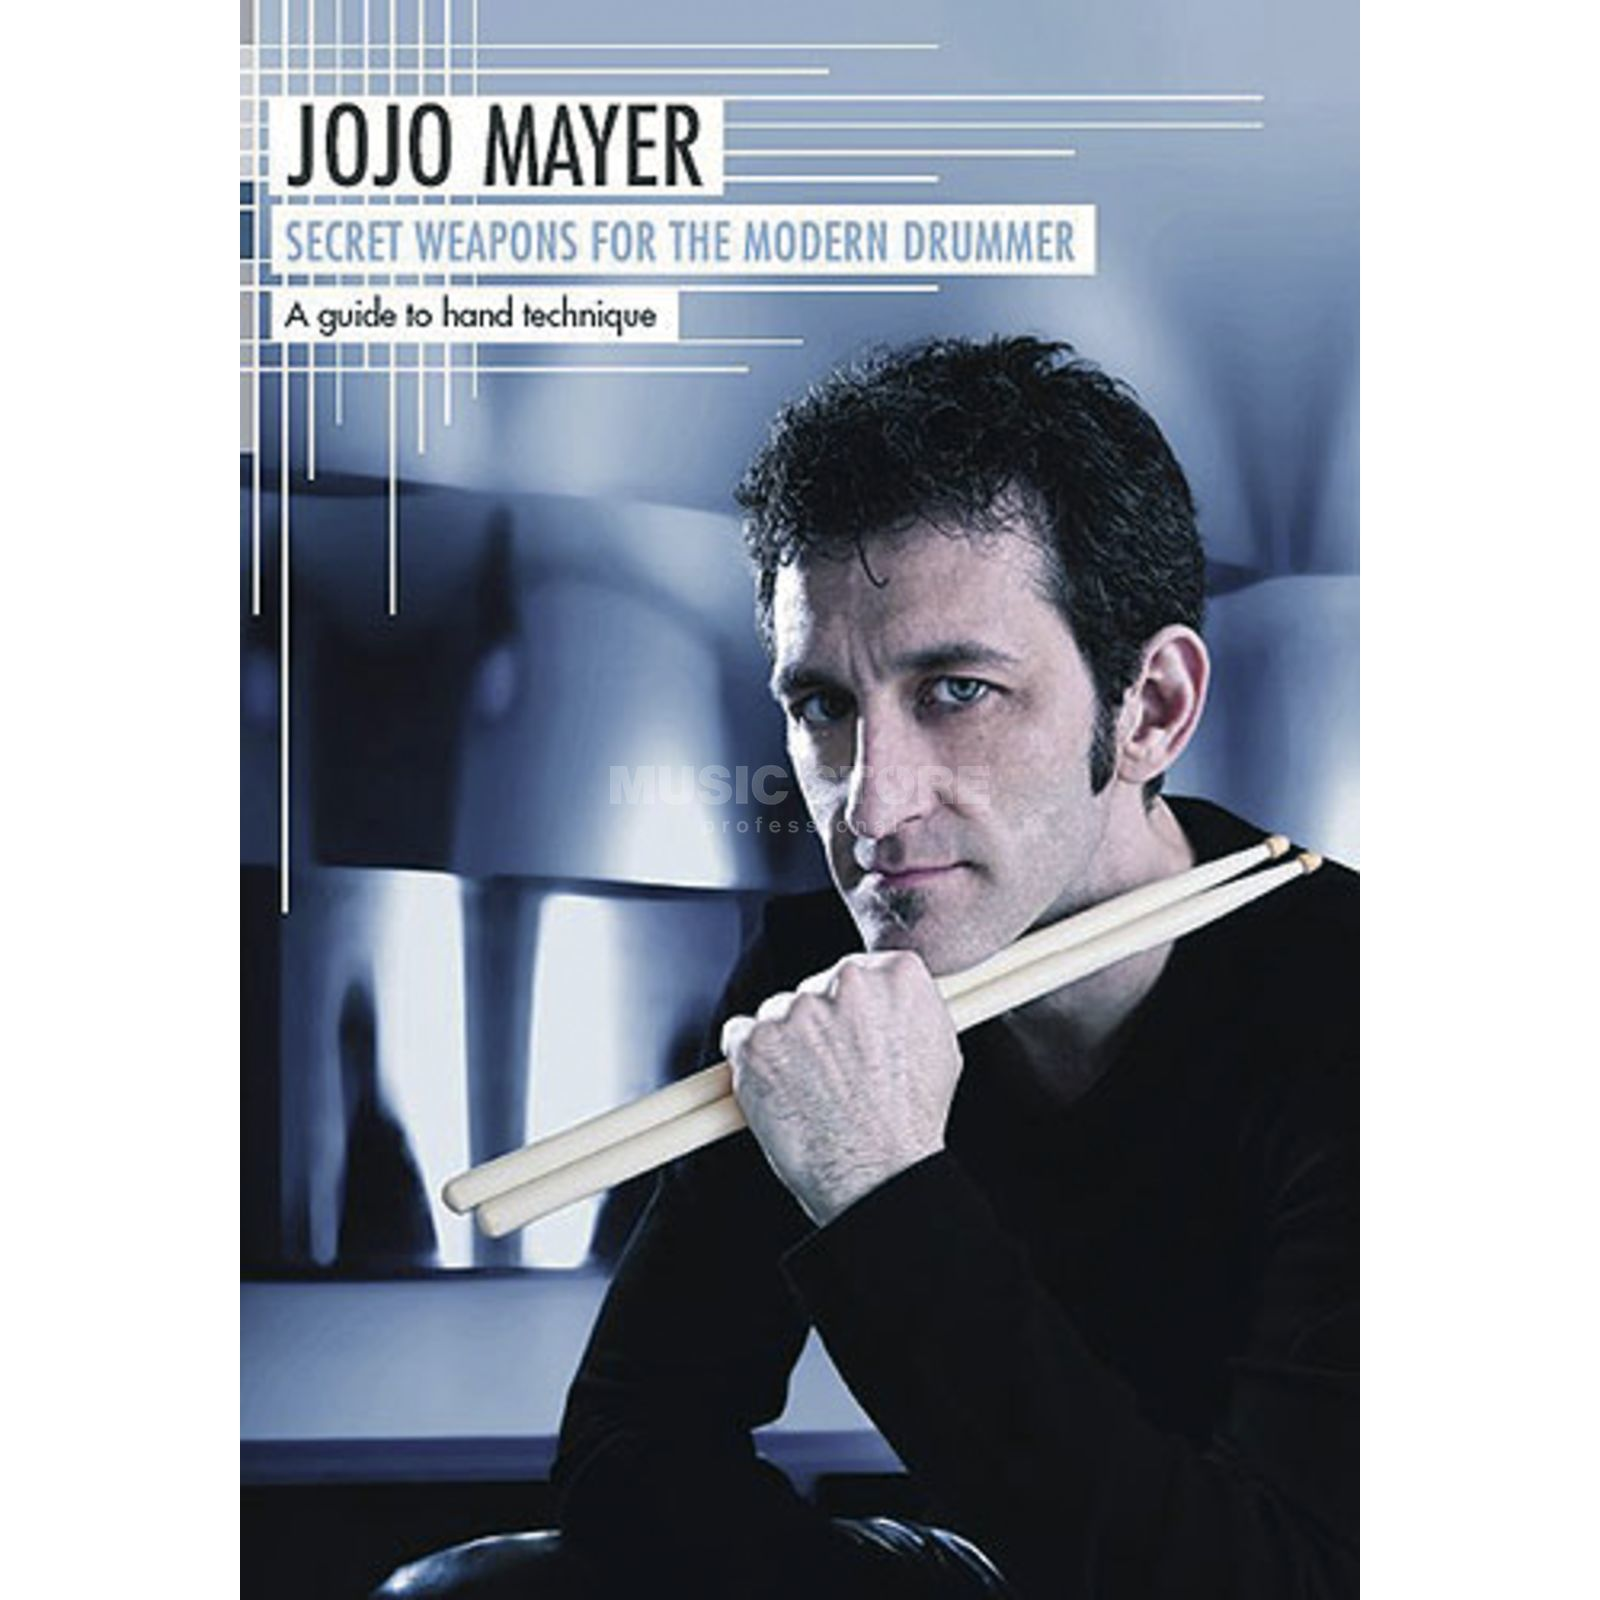 Hudson Music Jojo Mayer - Secret Weapons Handtechnik DVD, DEUTSCH Produktbild